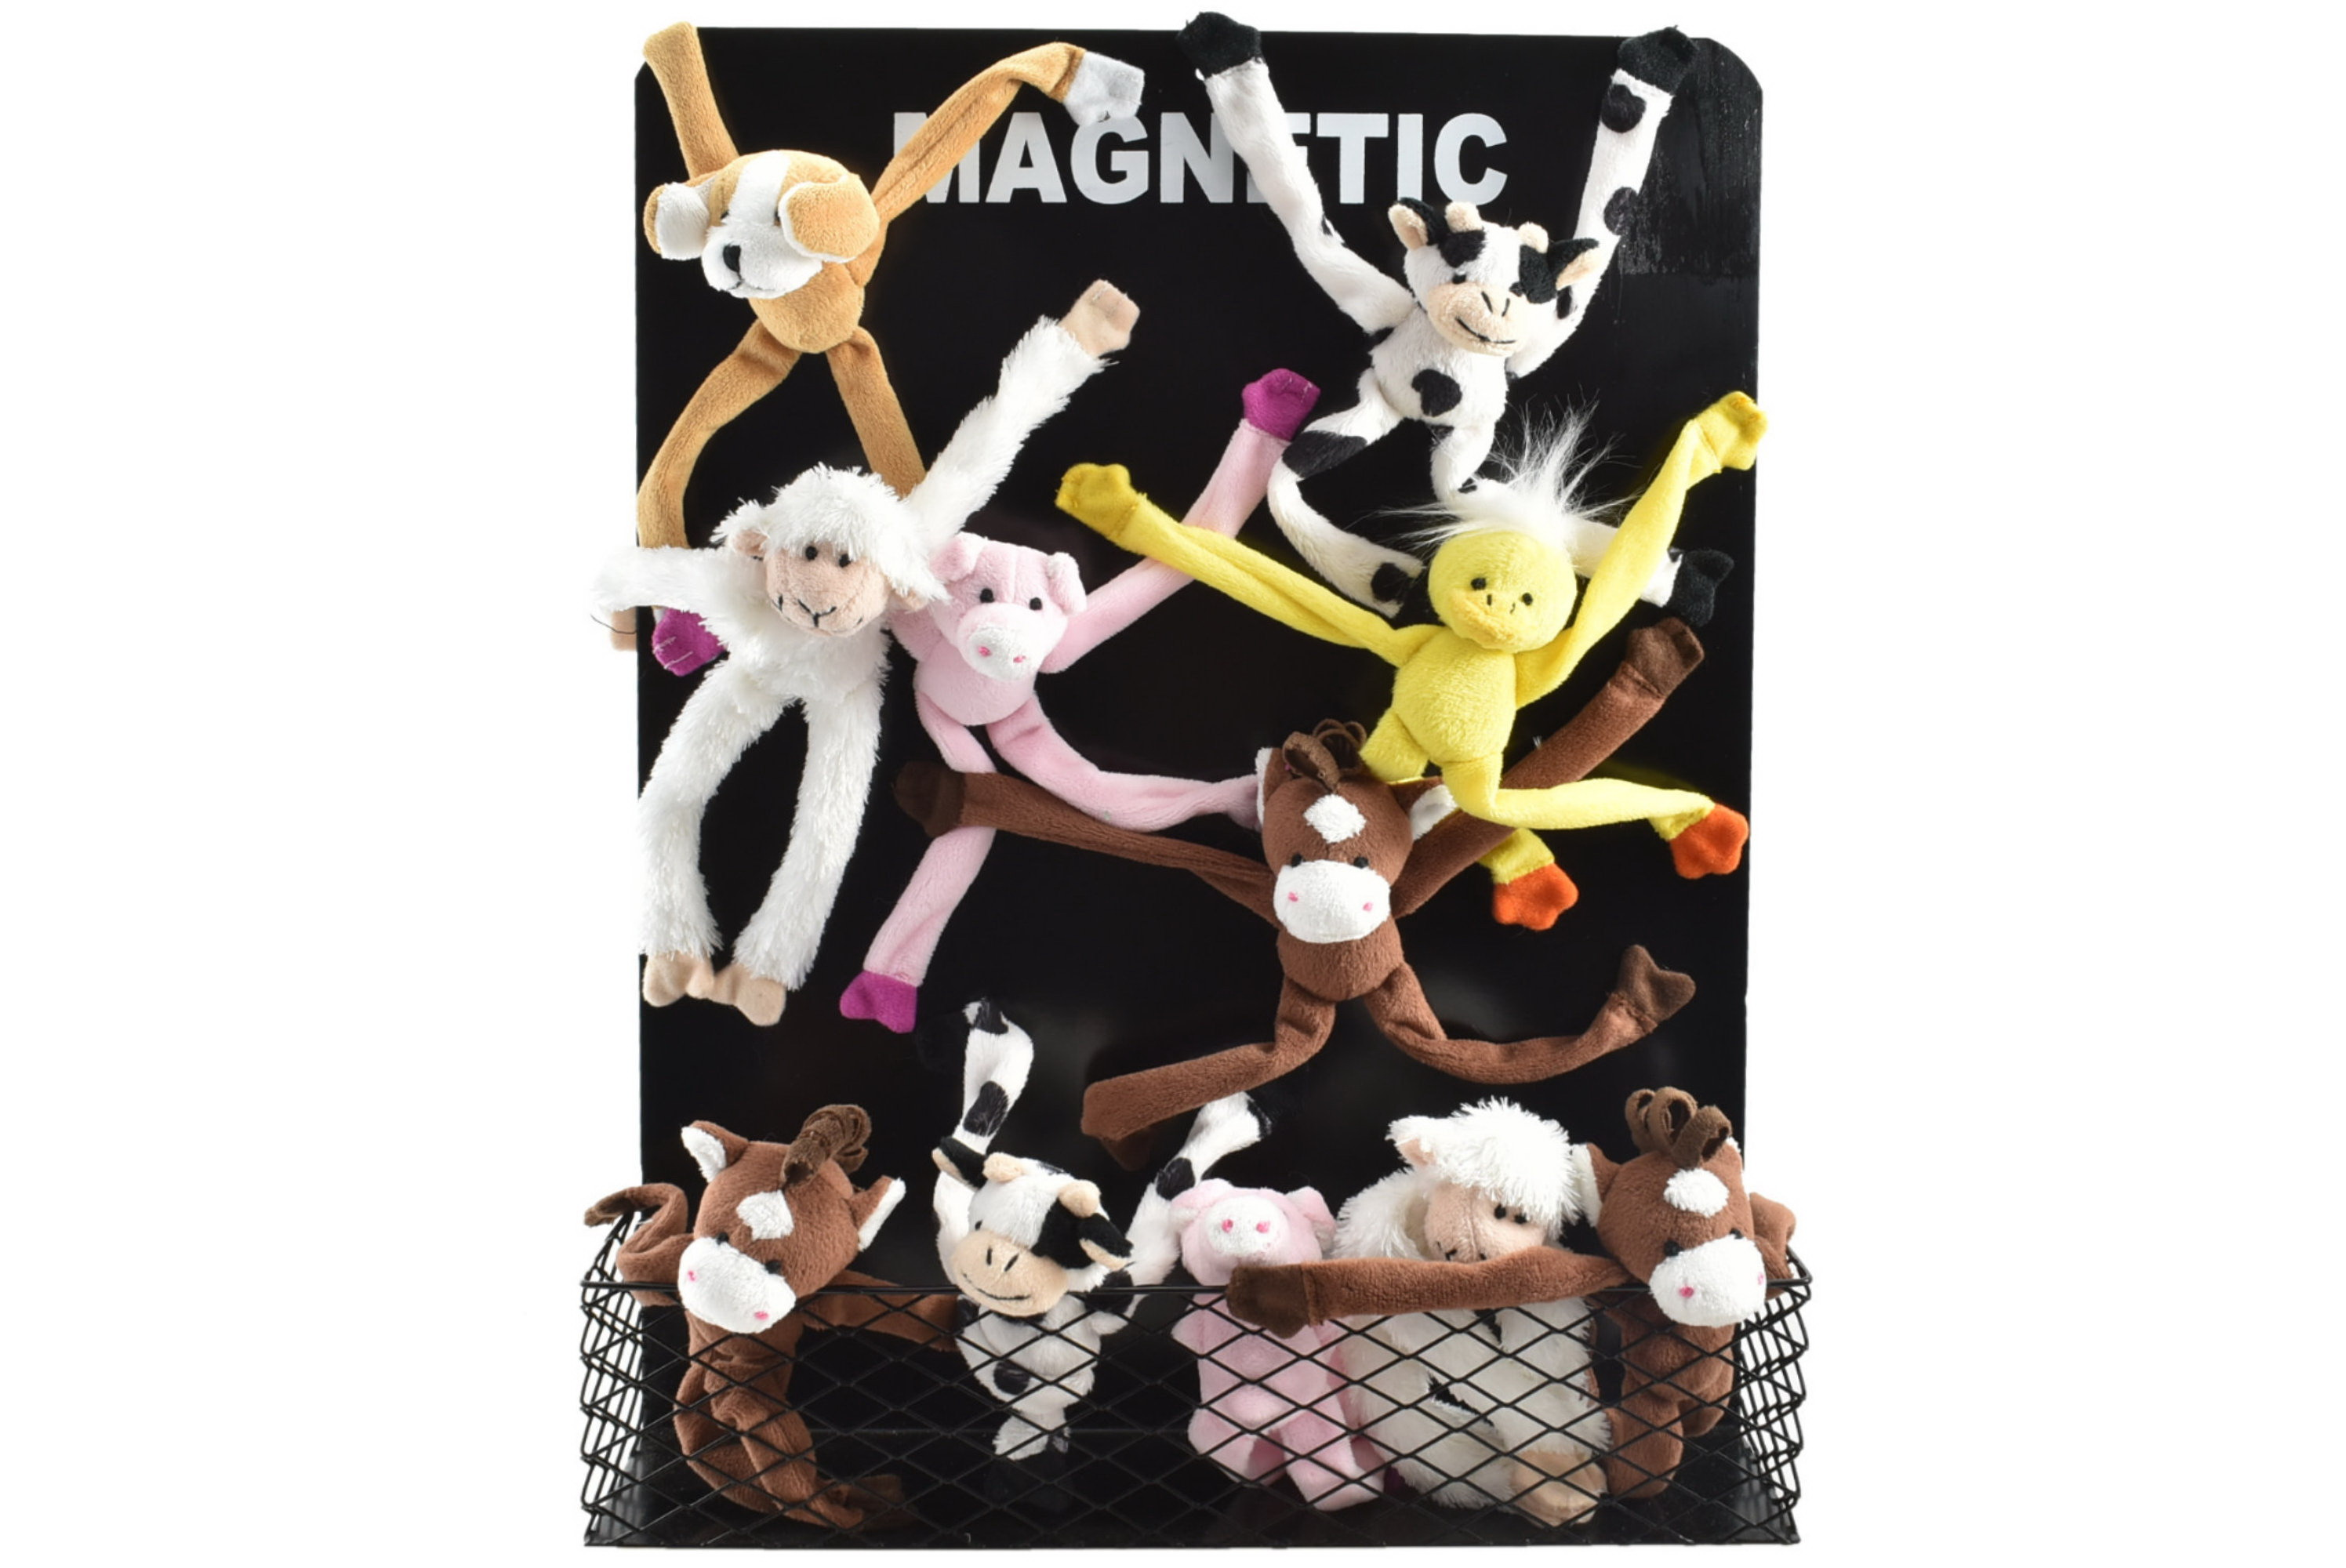 Farm Animal Magnets With Magnetic Display Stand 6 Asst